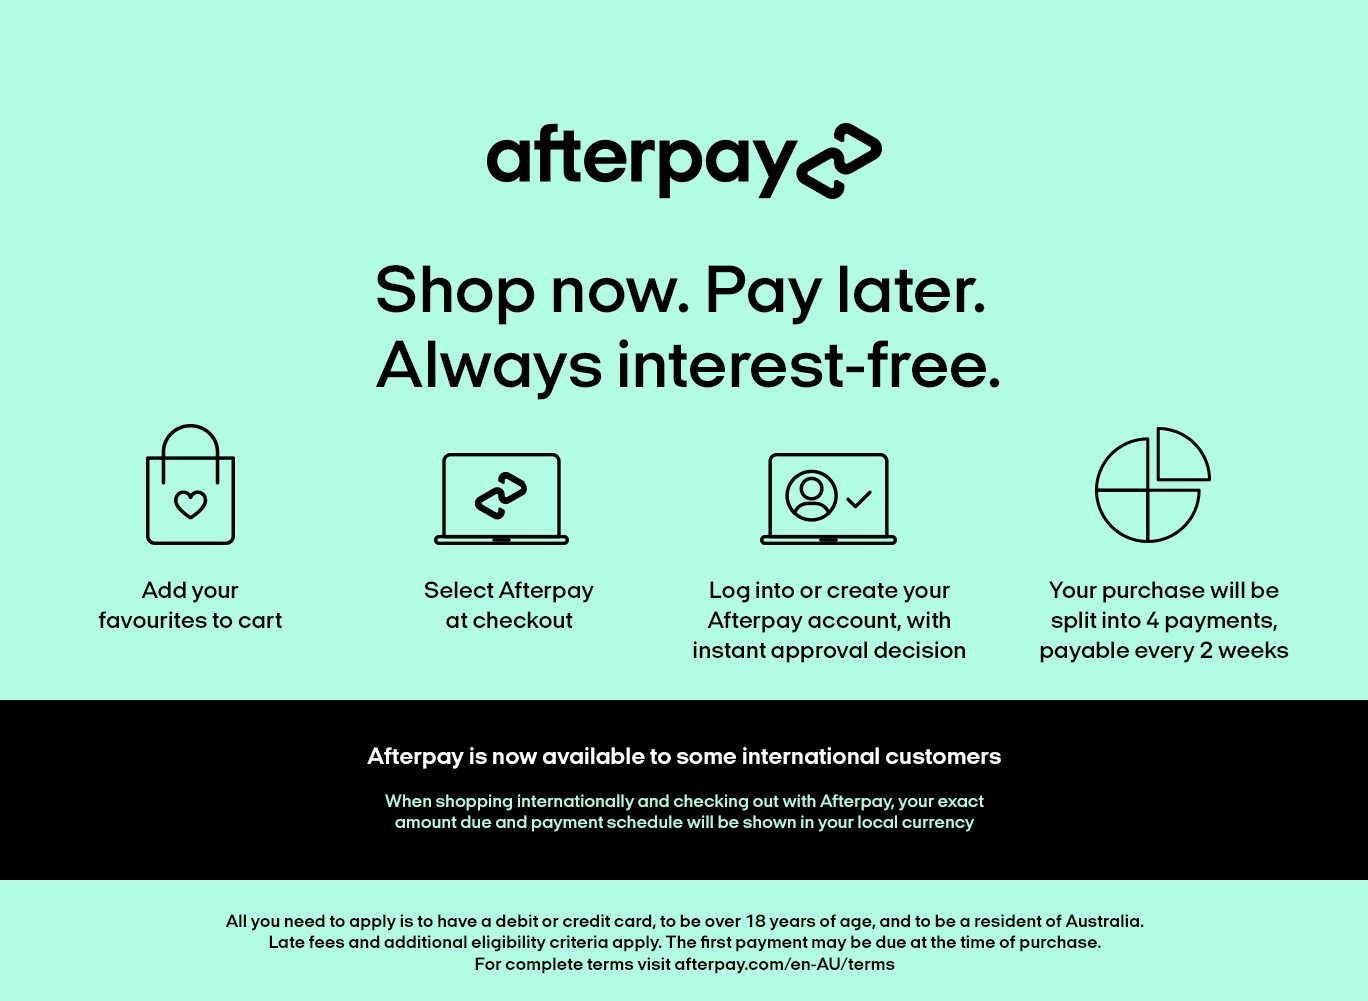 Afterpay Buy Now Pay Later, Interest Free, Always, After Pay, Pay in instalaments, for Australian Made UGG Boots, Comfort Me.